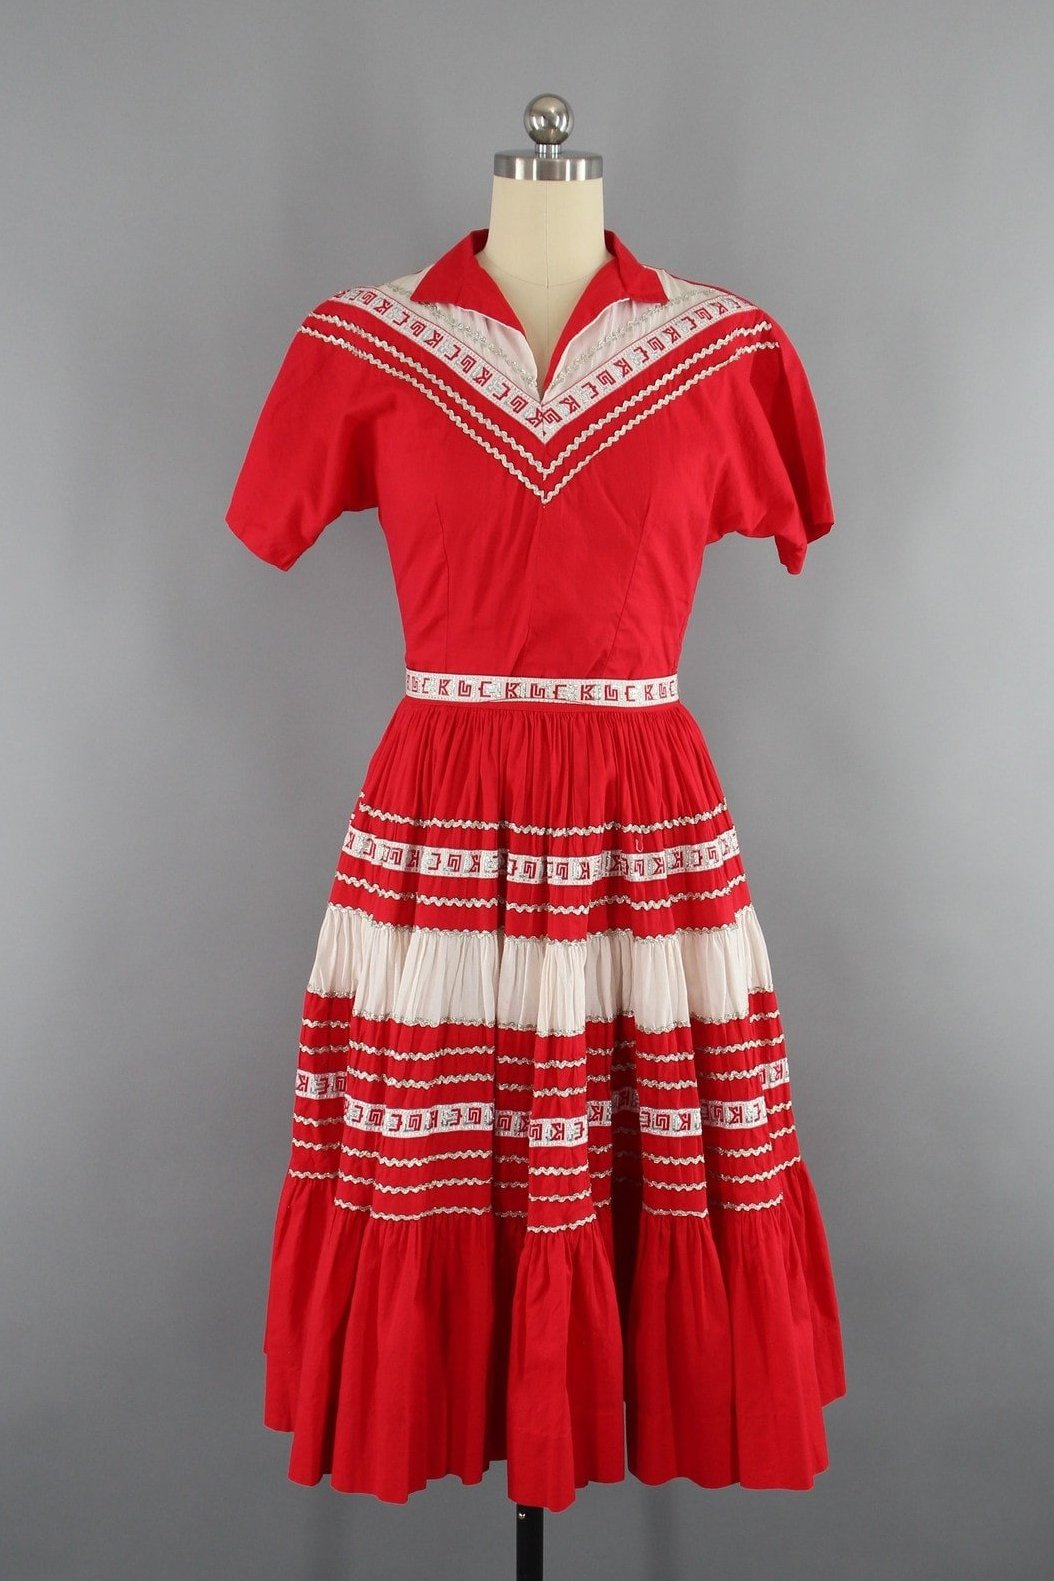 Vintage 1940s Square Dance Dress from Bogarts Fort Worth Texas Dress ThisBlueBird